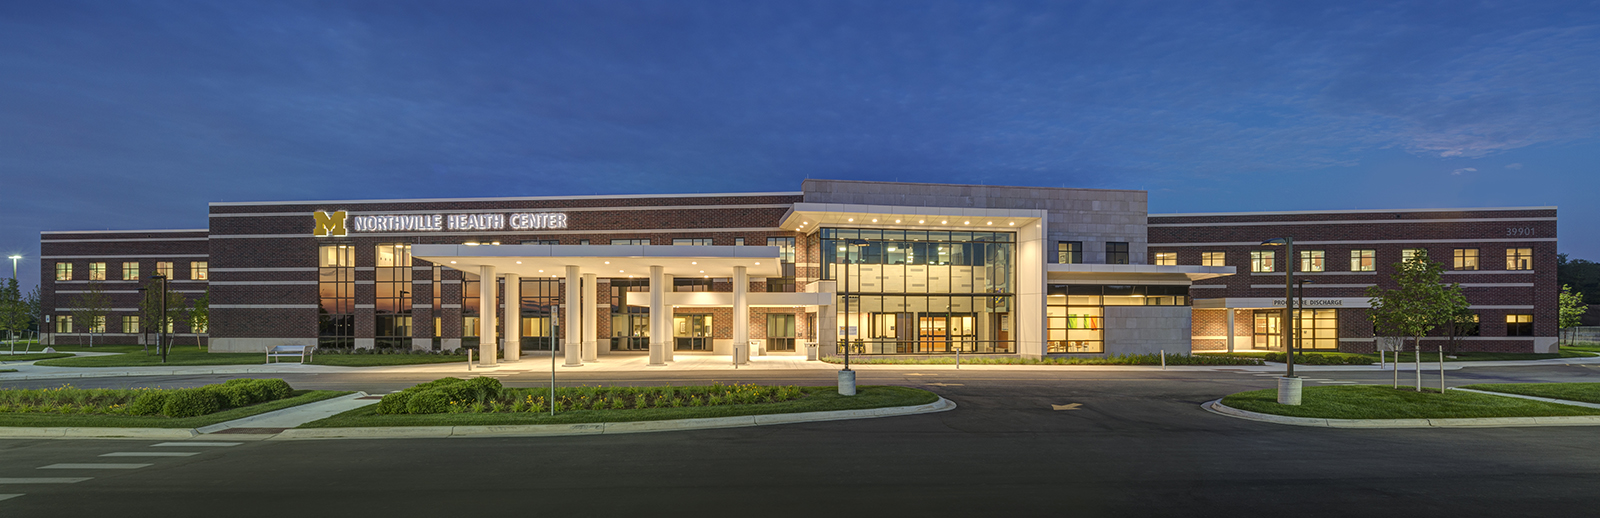 uofm-northville-health-center-exterior